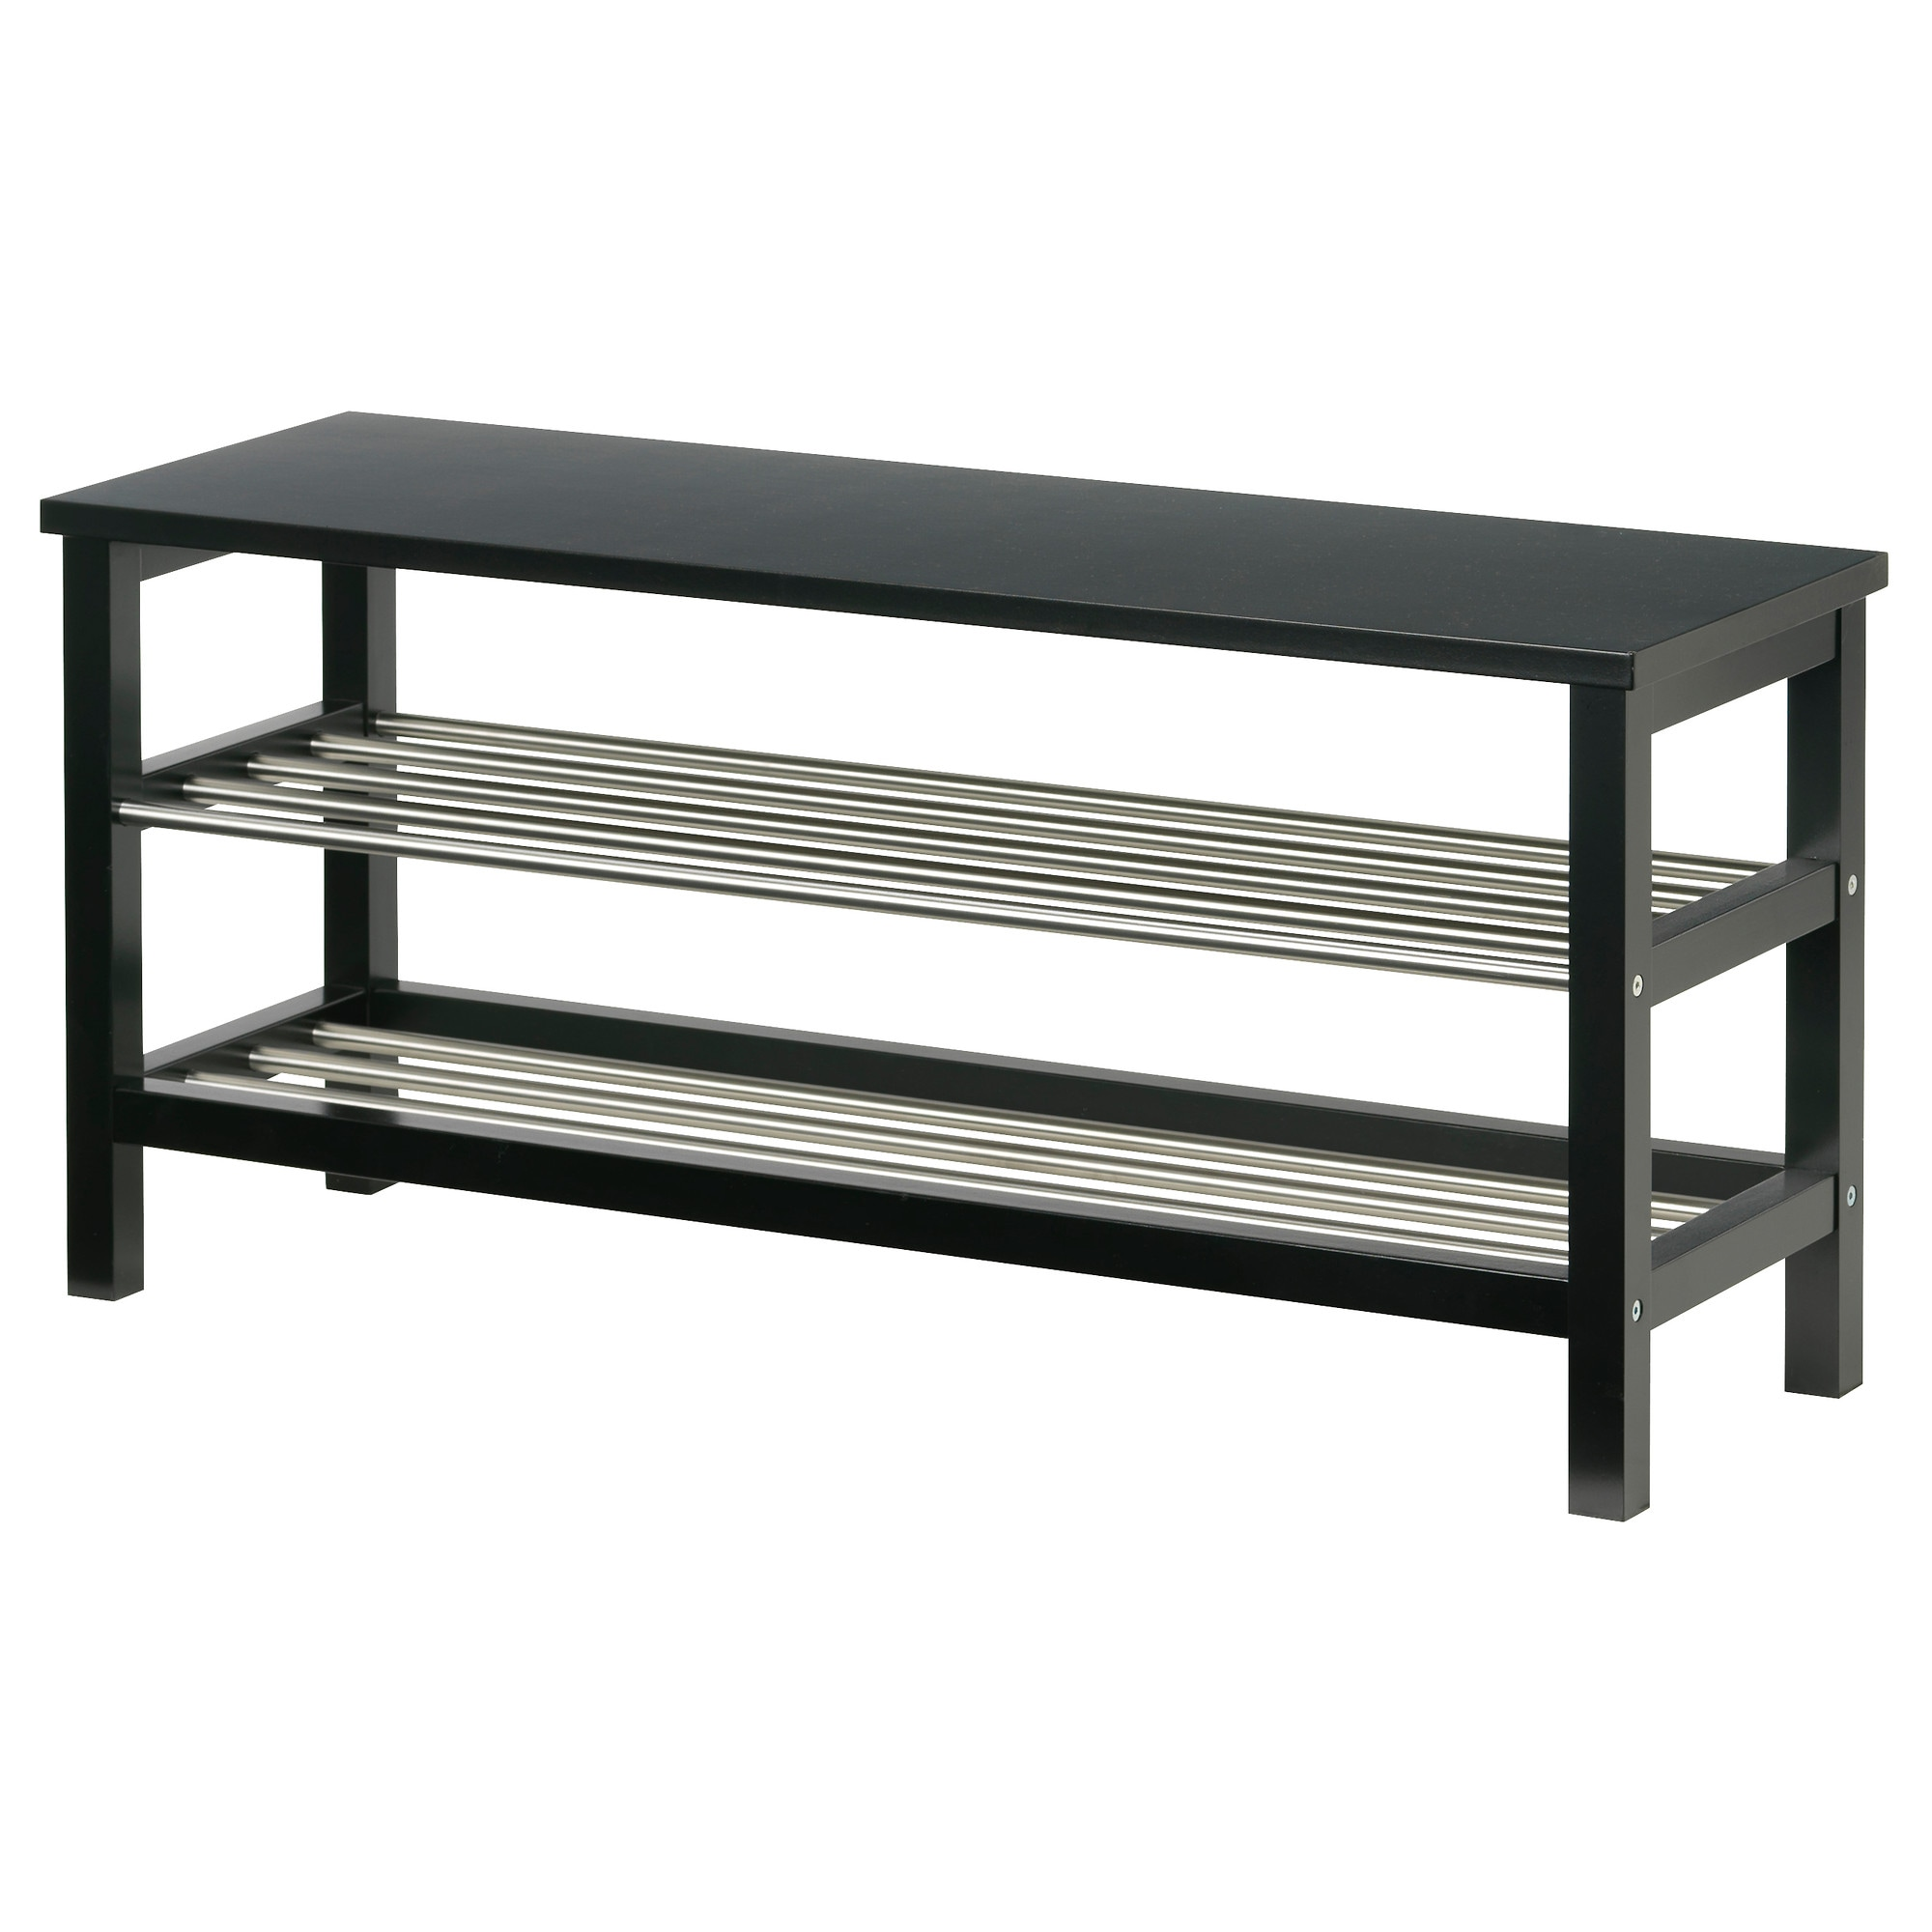 Design Ikea Shoe Racks tjusig bench with shoe storage black ikea